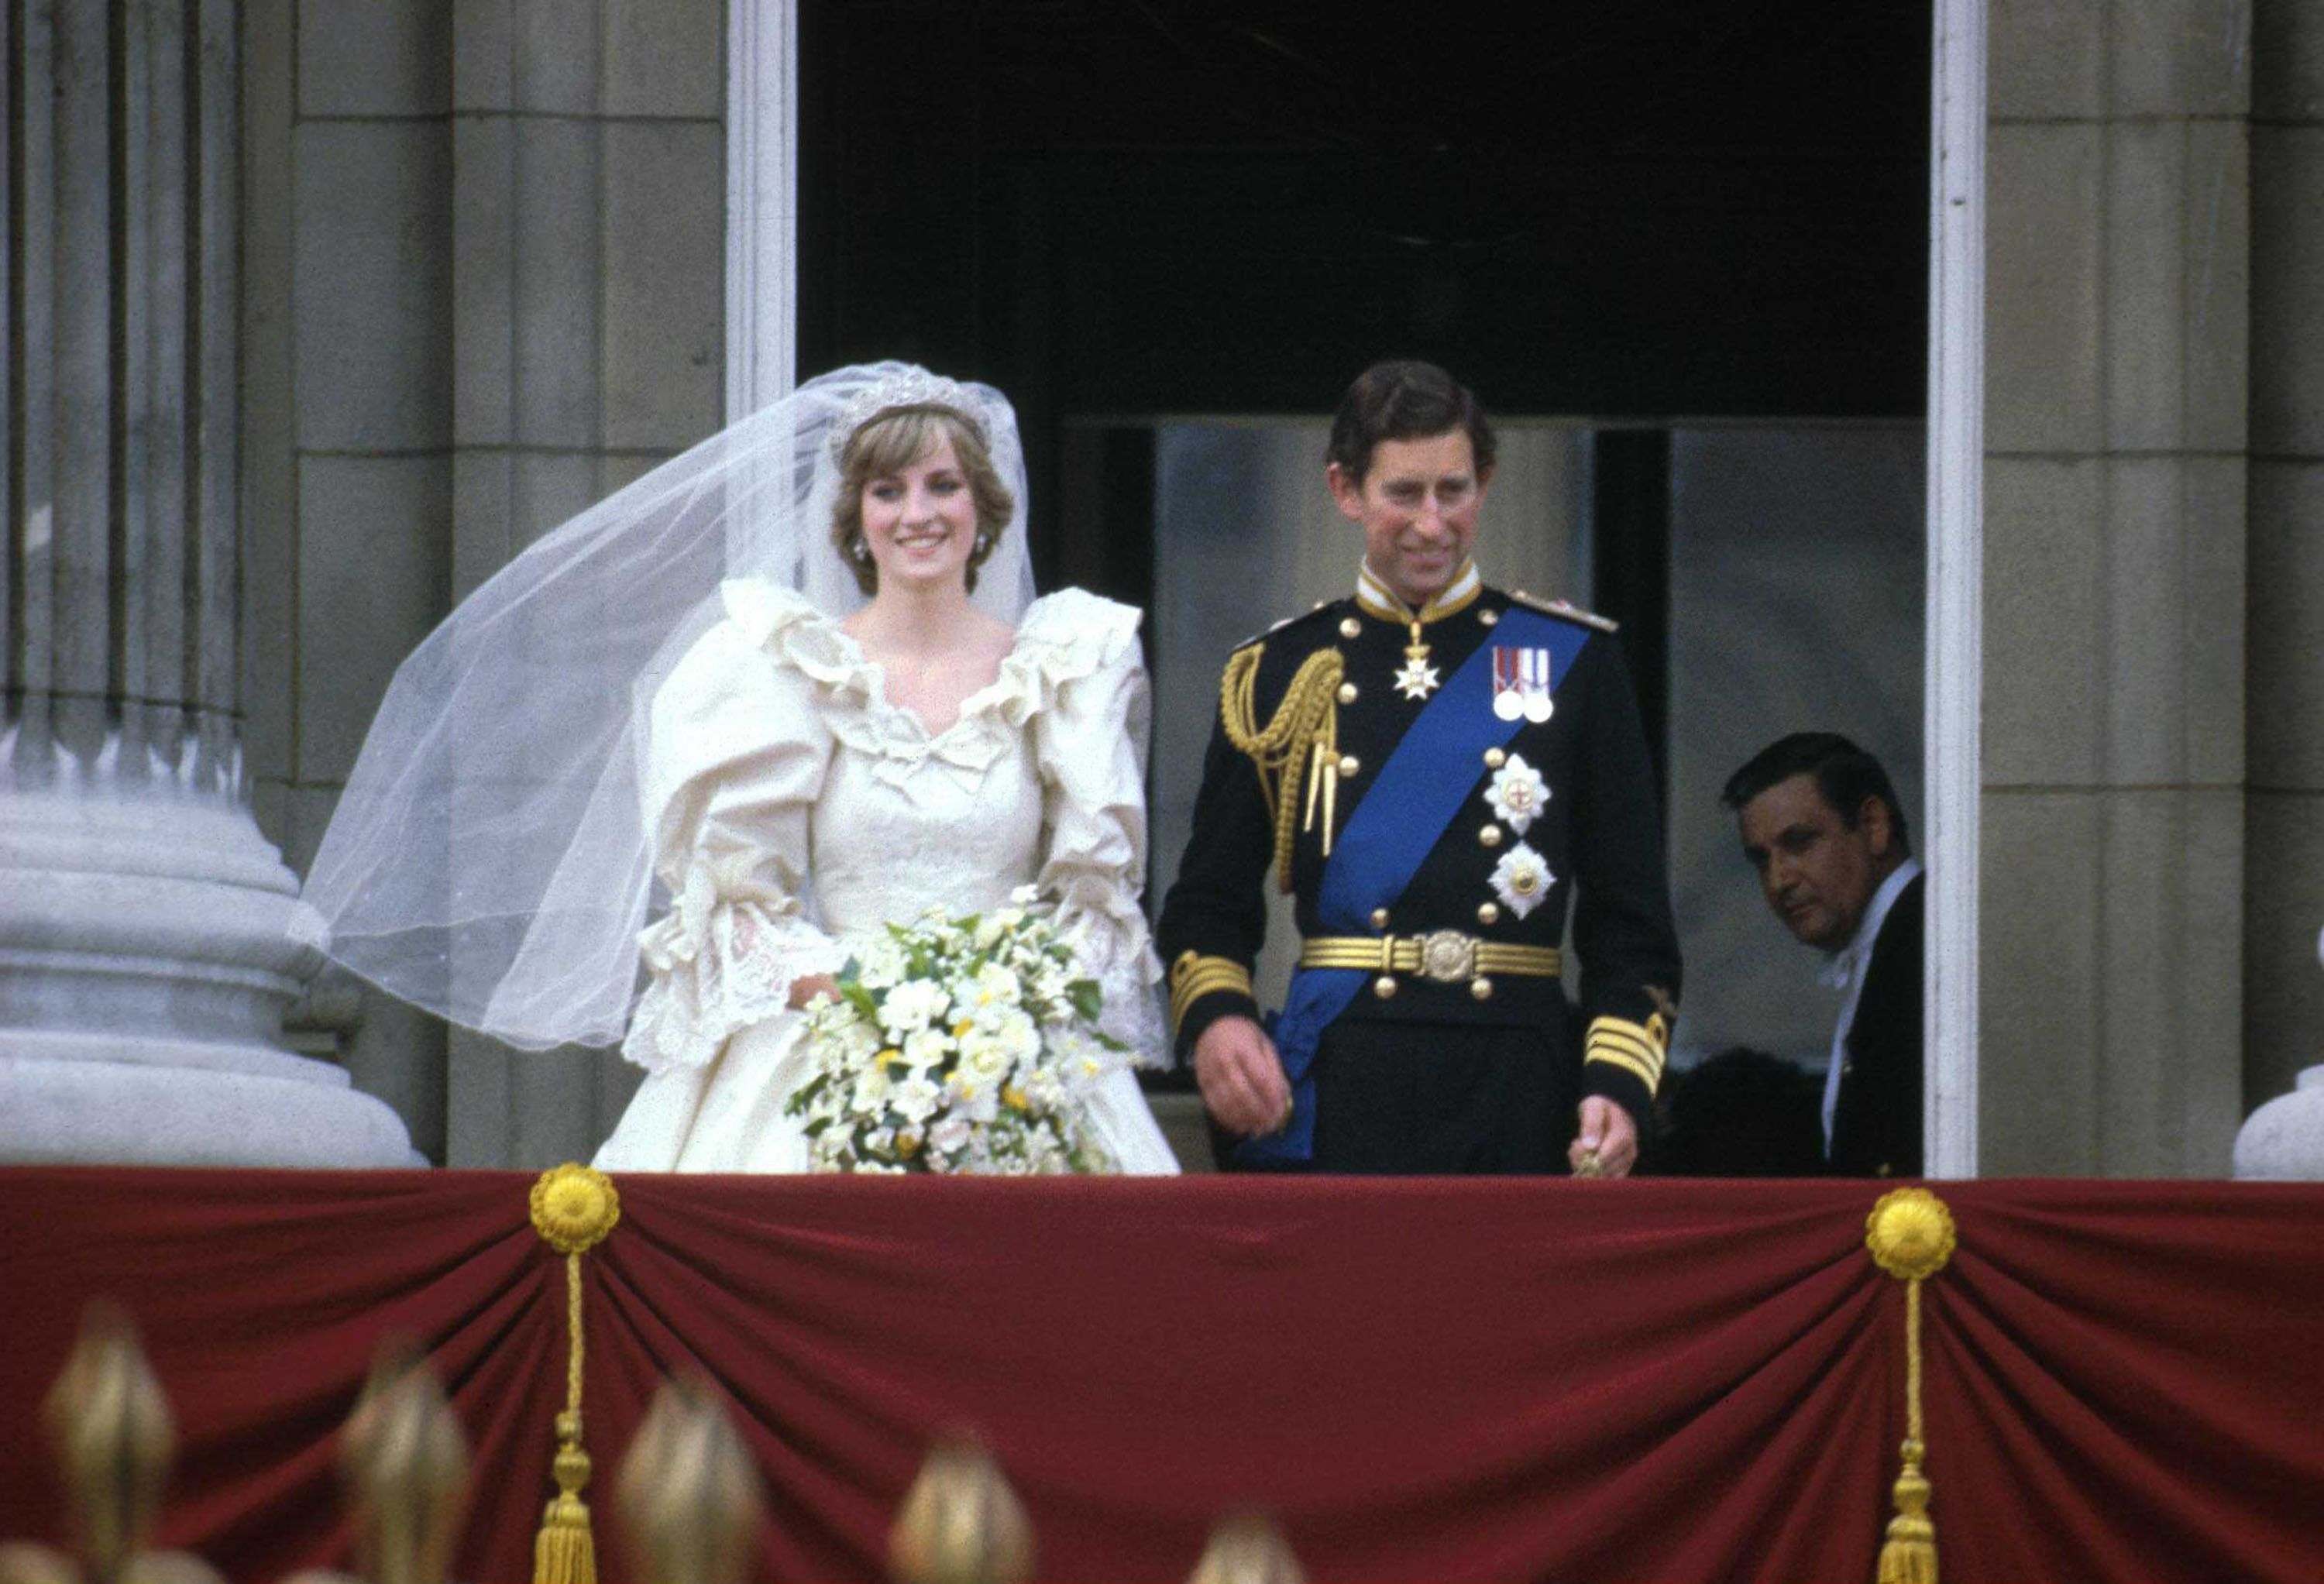 Charles And Diana Wedding.Princess Diana S Wedding Charles And Diana S Most Glamorous